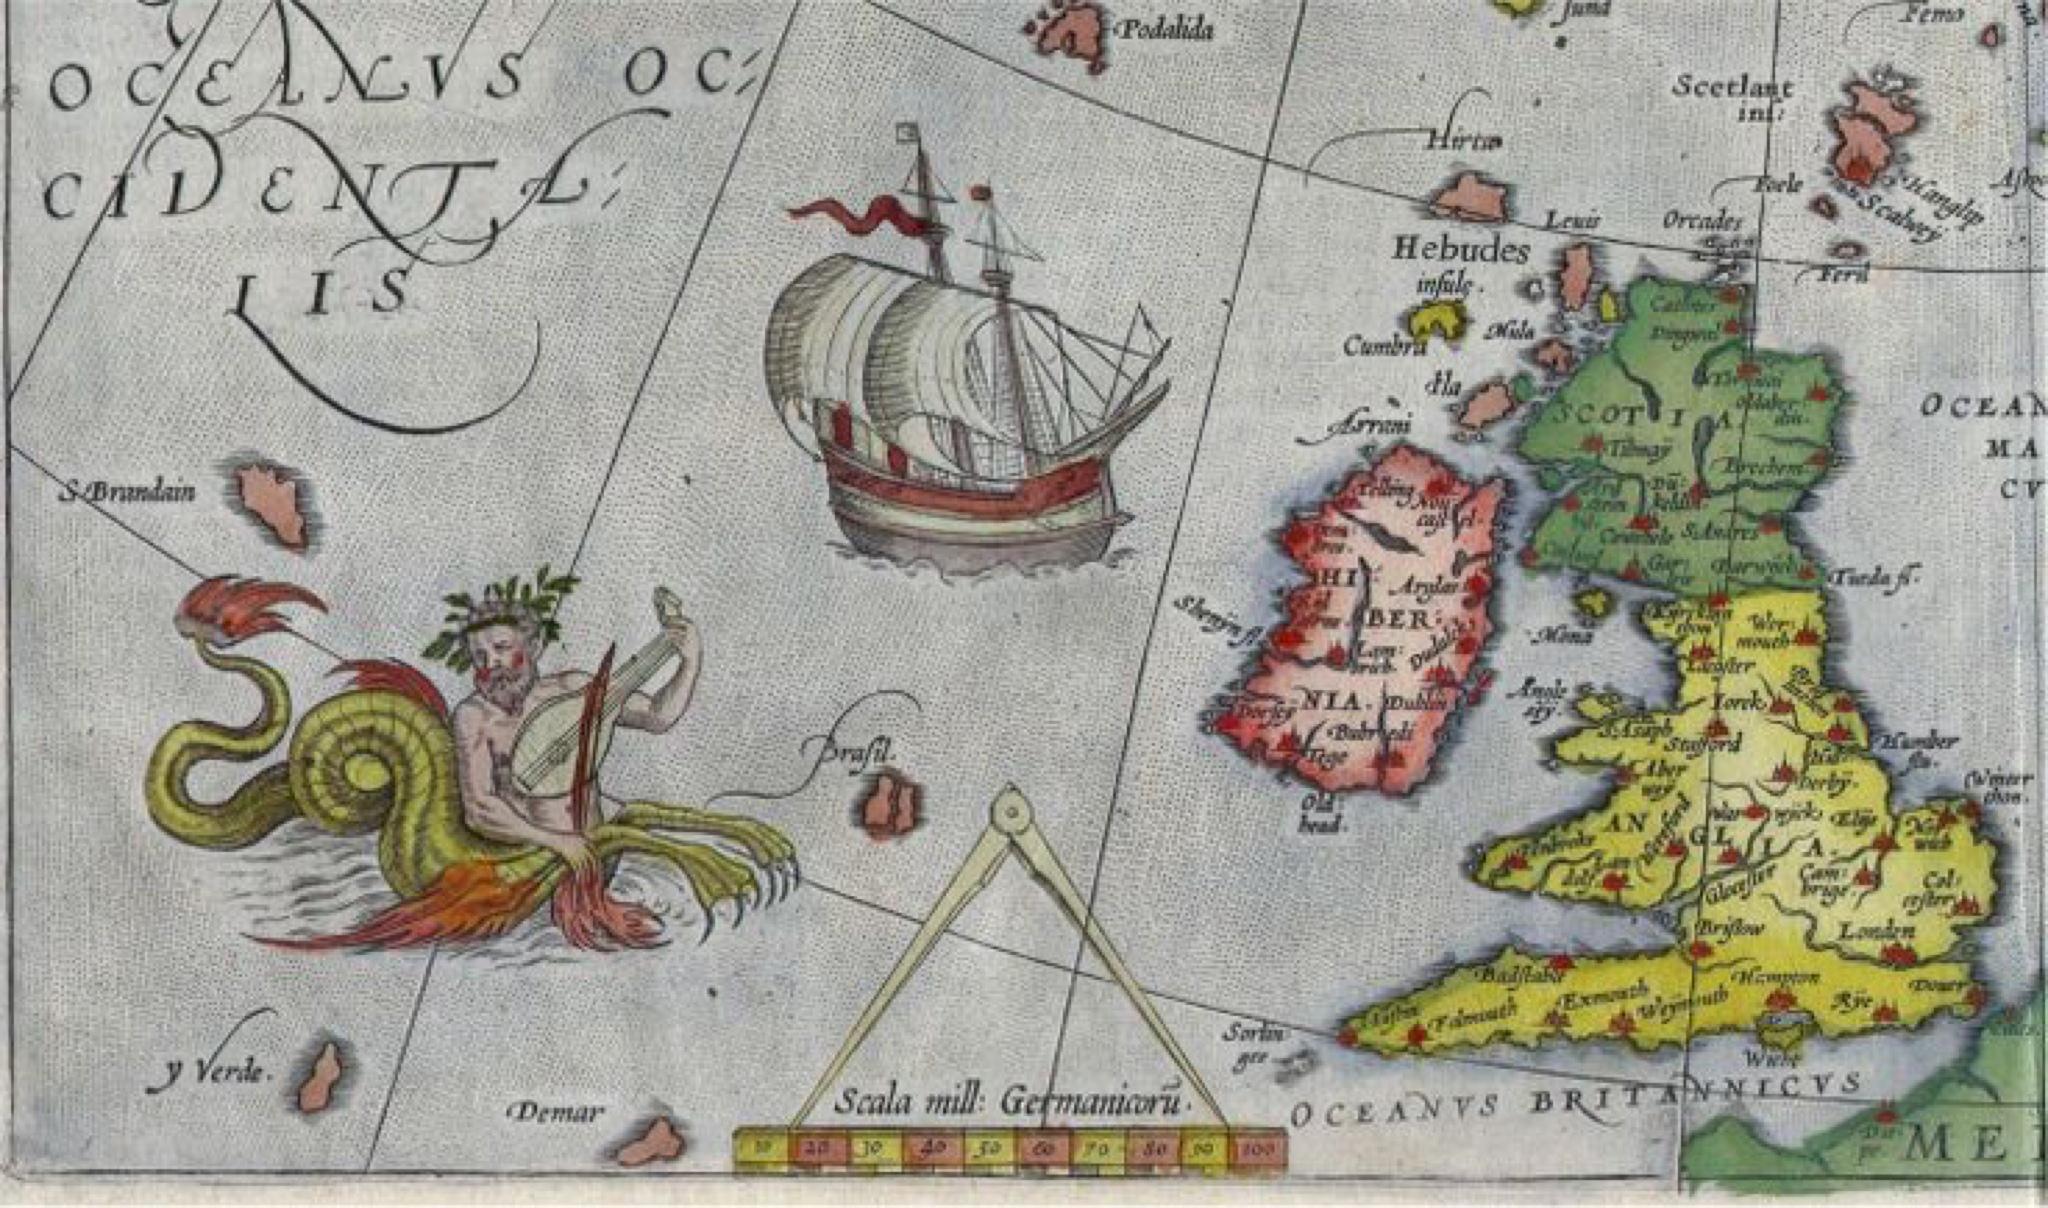 The legend of Hy Brasil: a mythical island off the coast